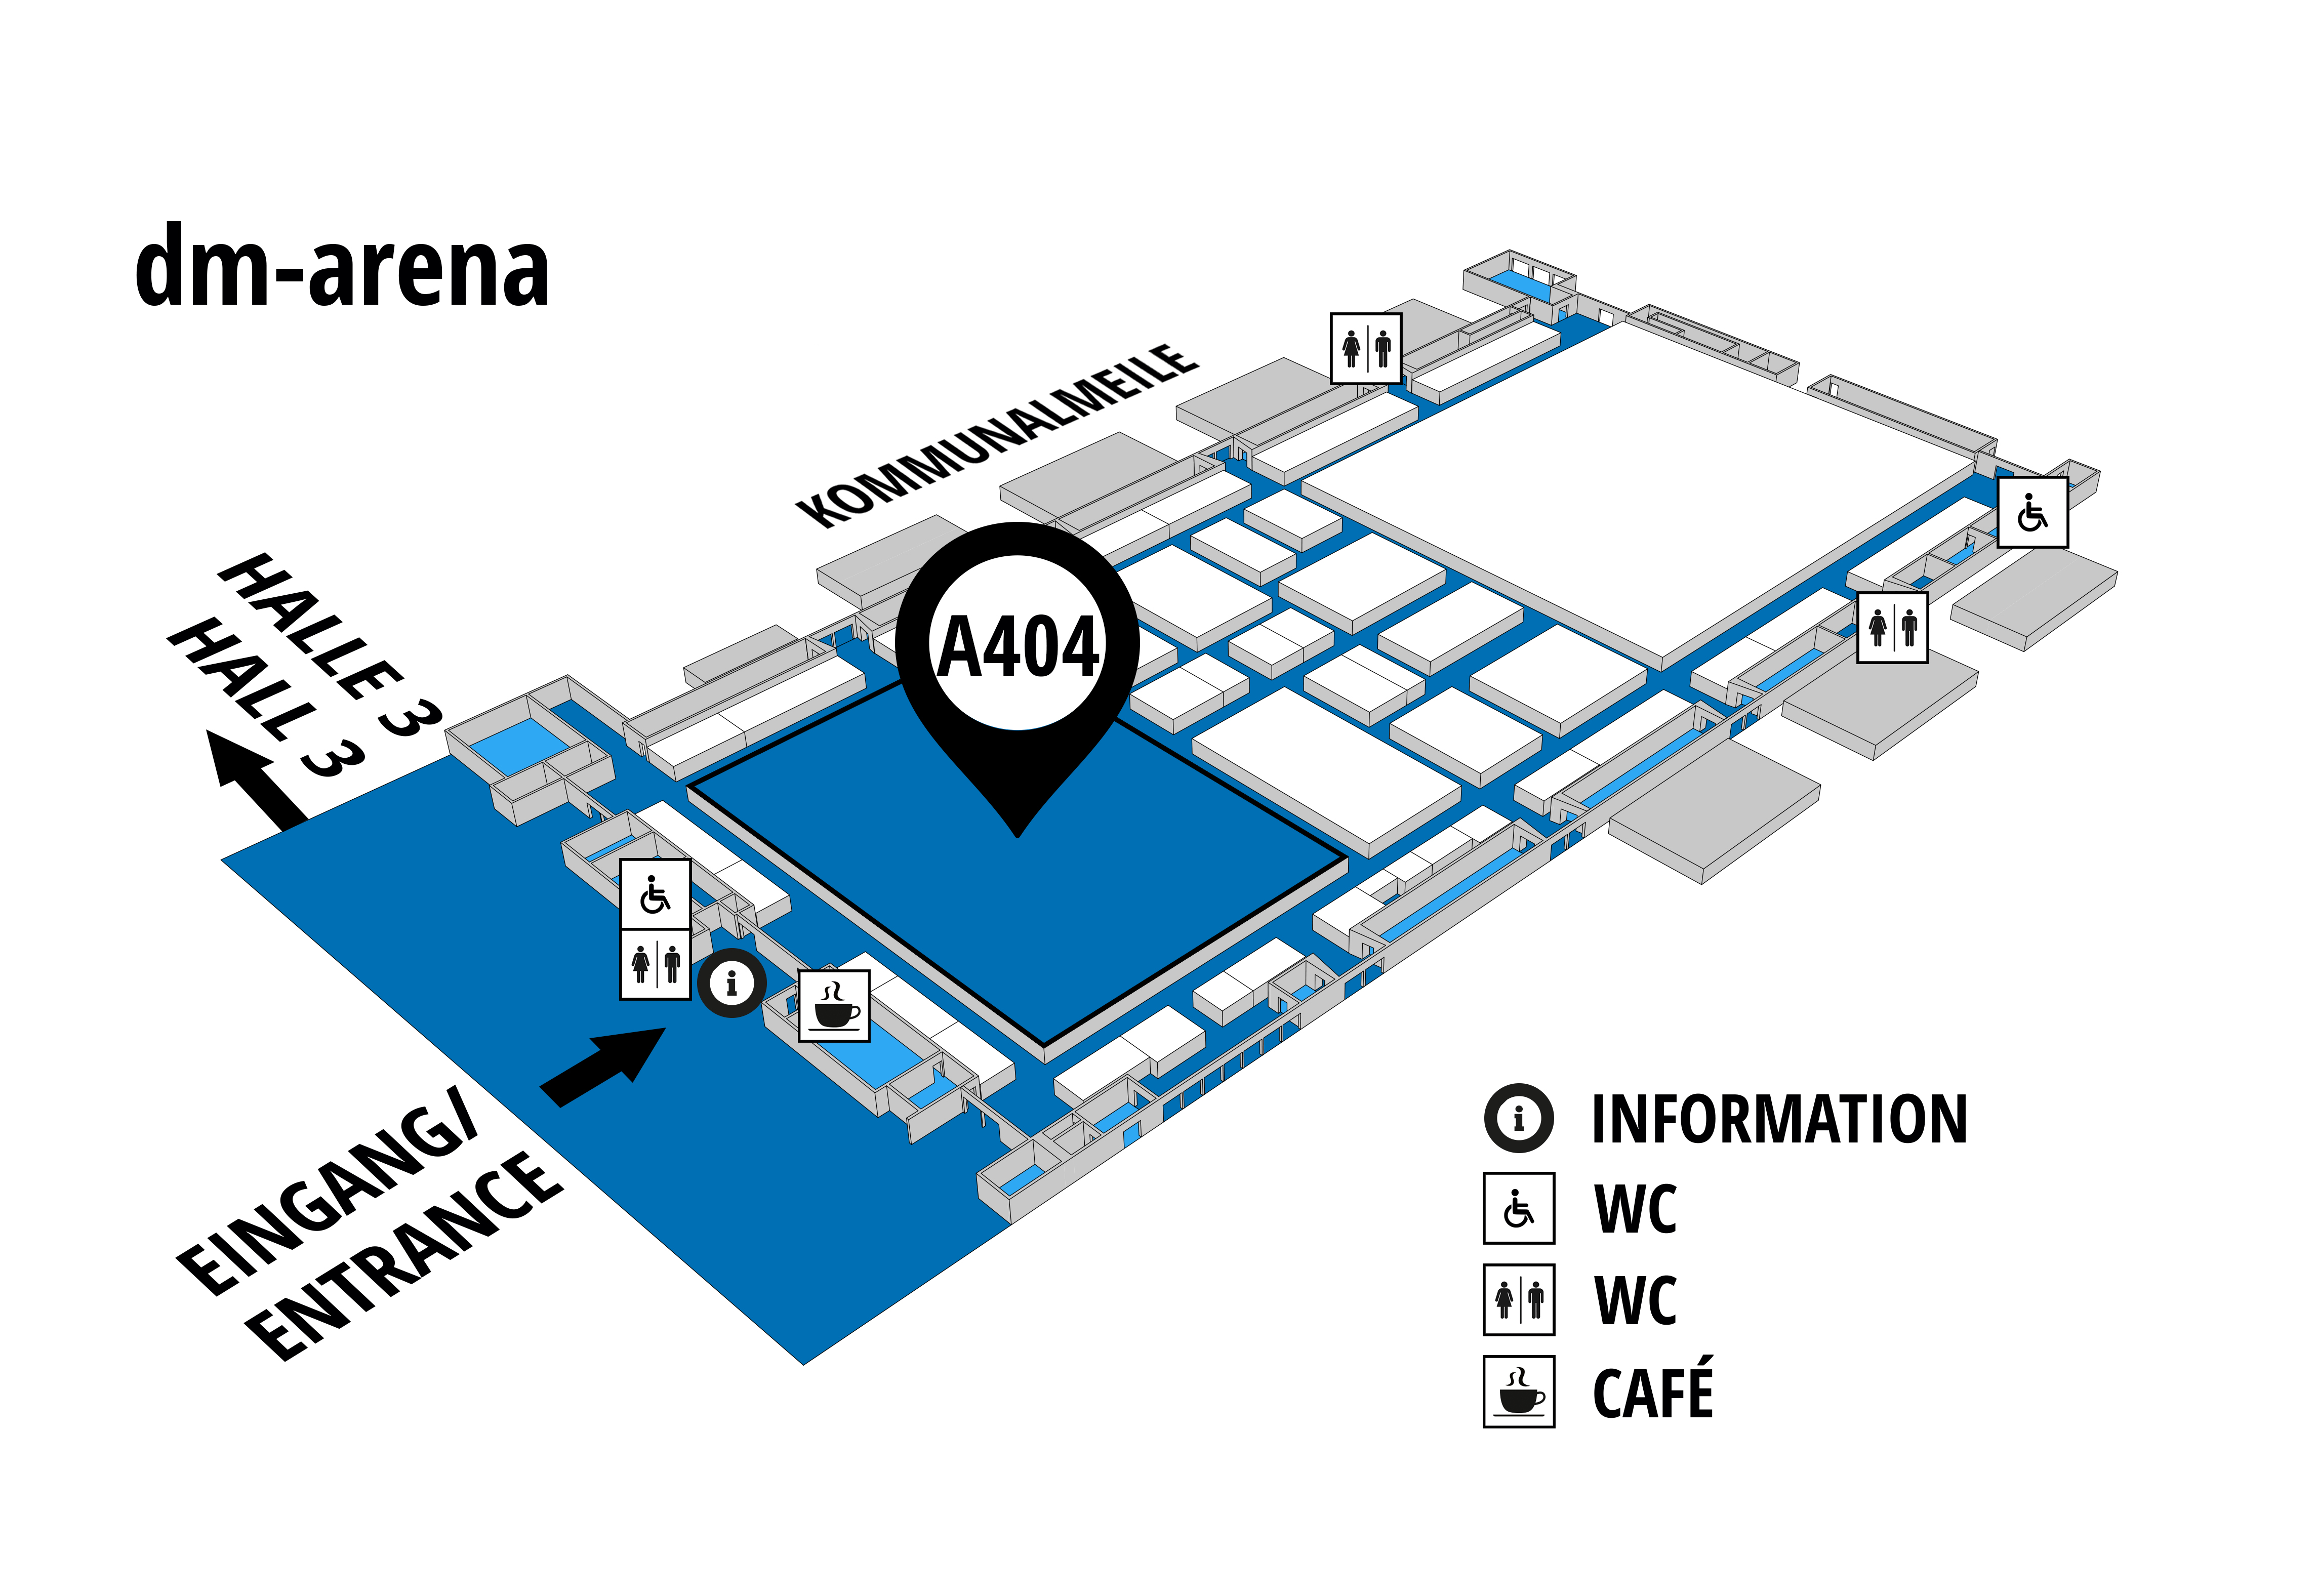 NUFAM 2019 - Trade fair for commercial vehicles hall map (dm-arena): stand A 404